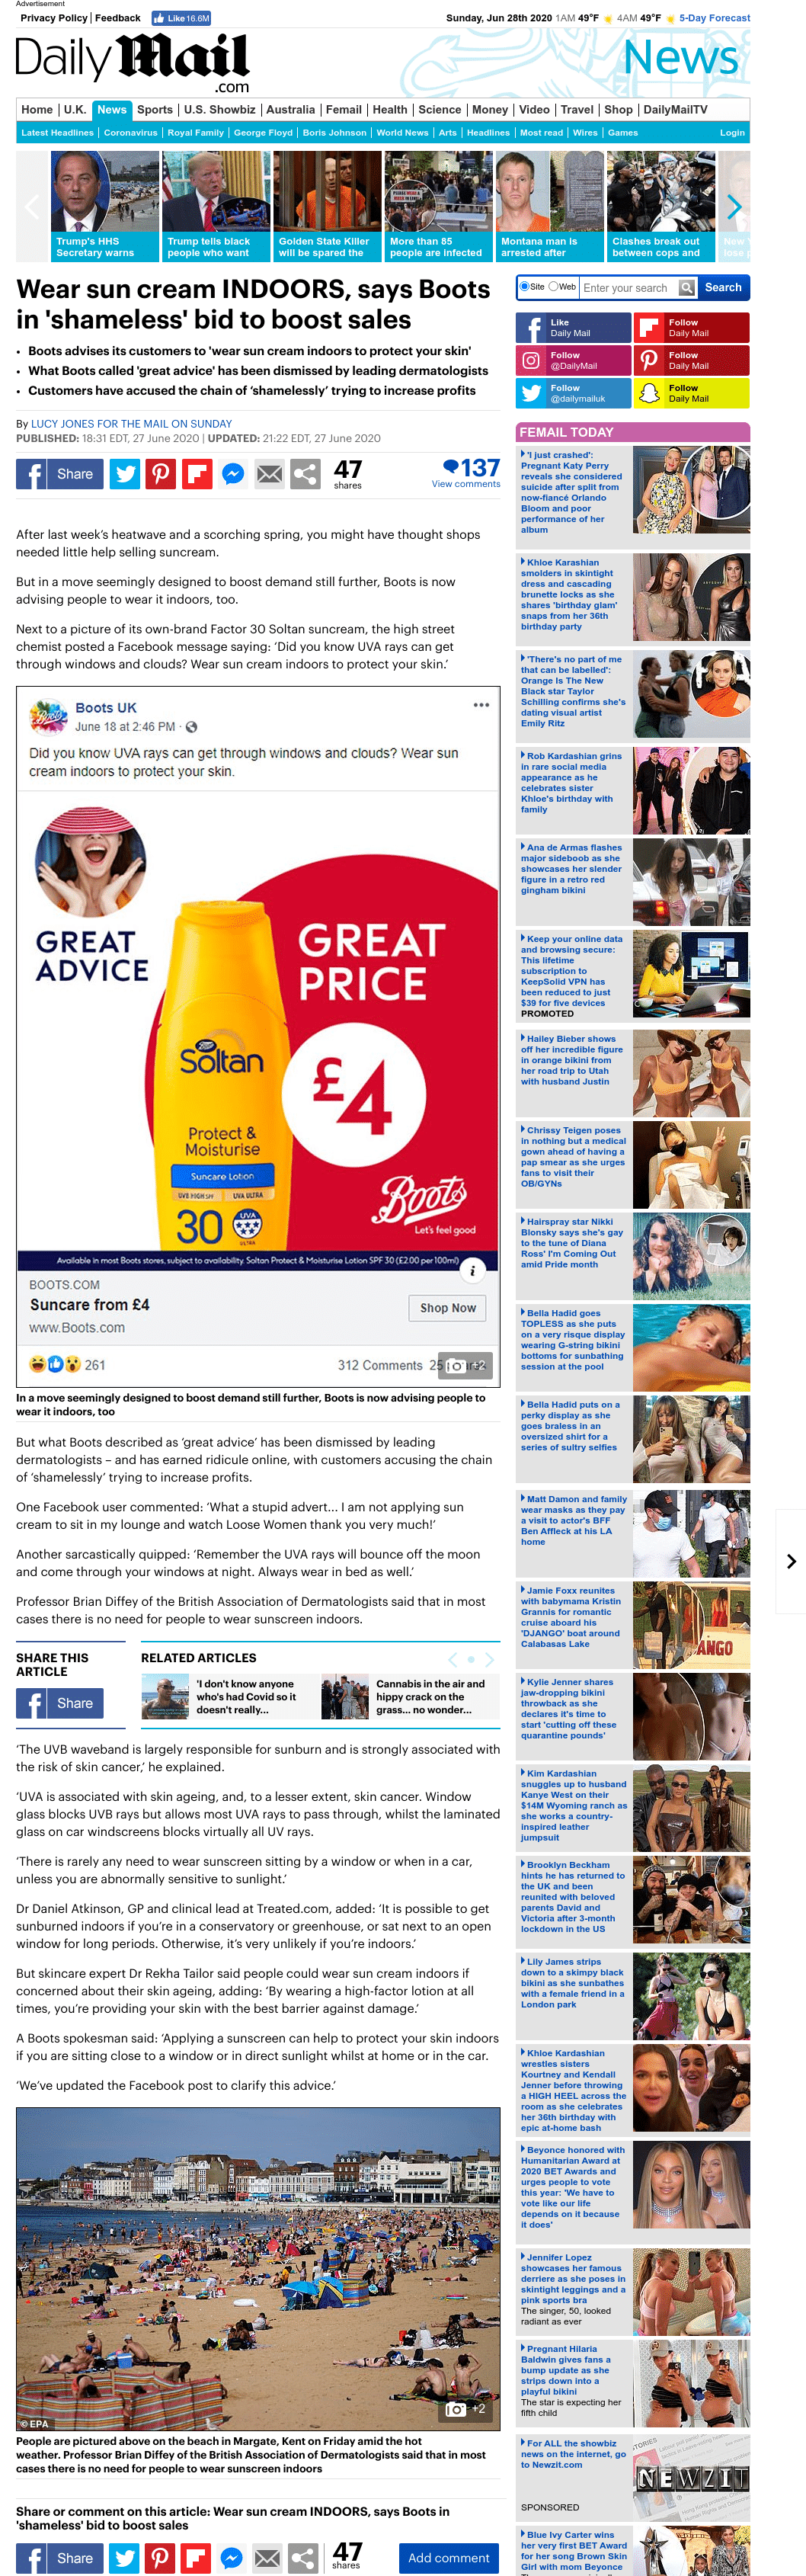 Daily Mail - June 2020